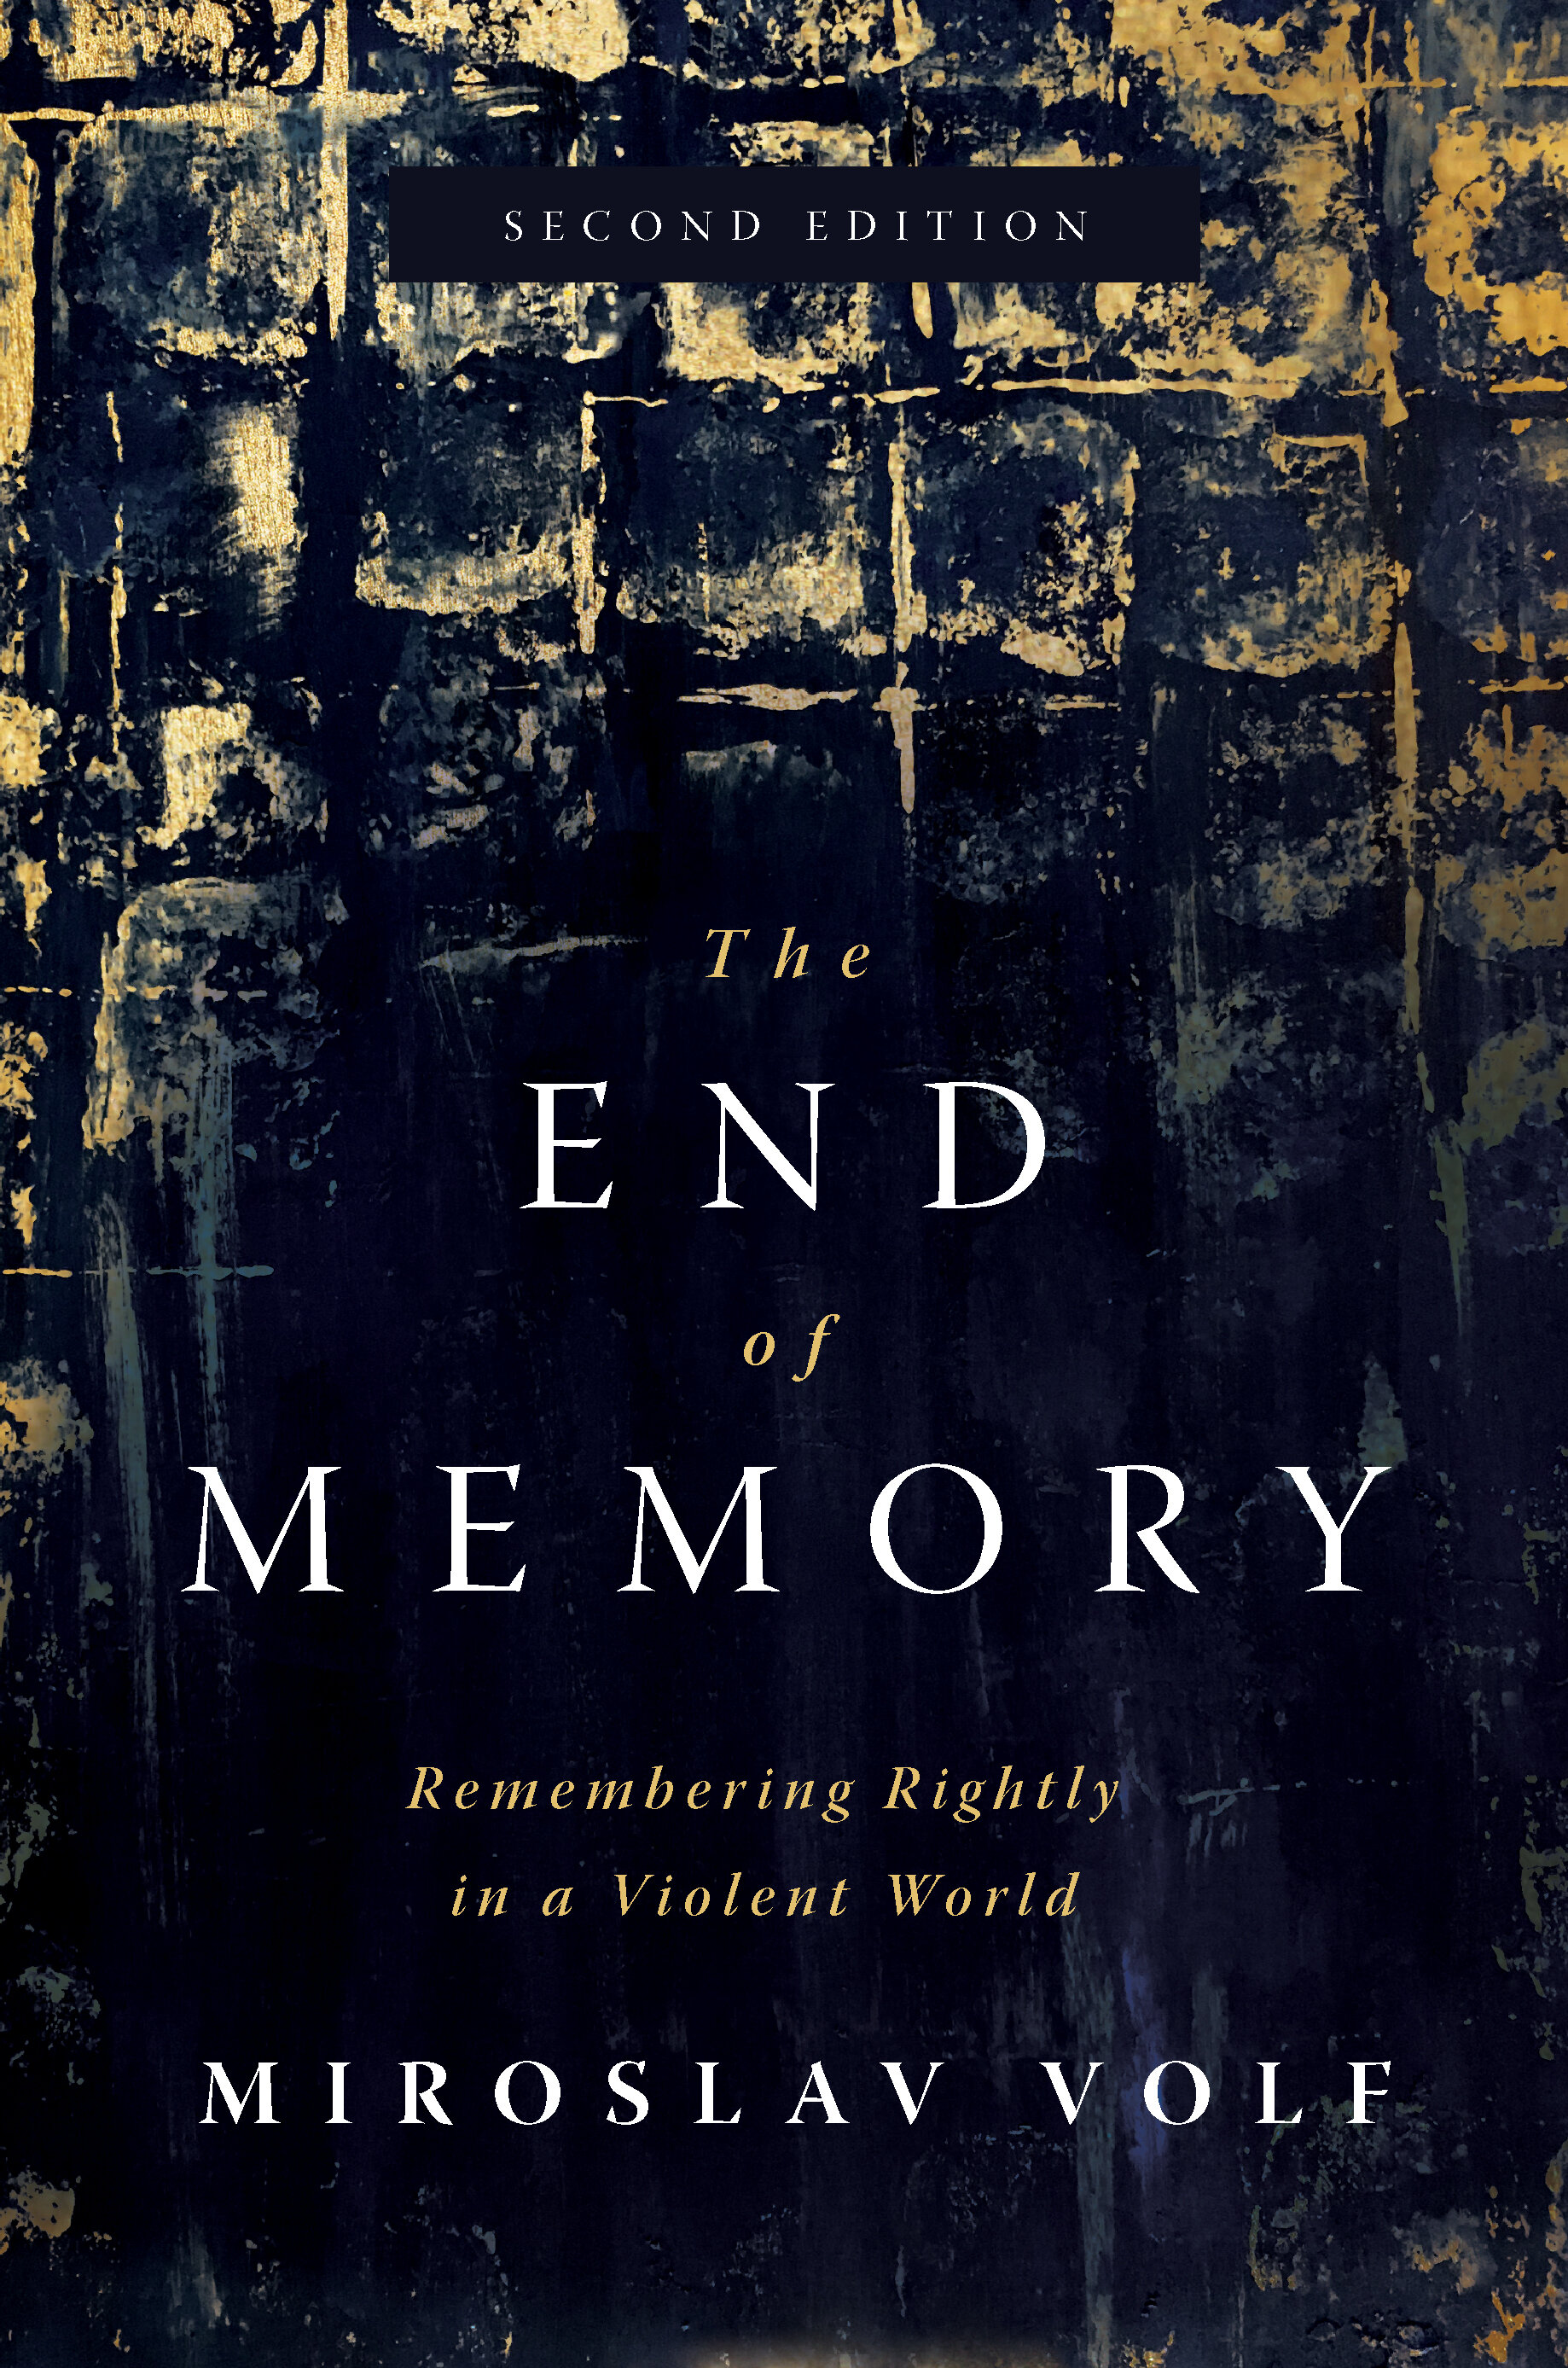 The End of Memory: Remembering Rightly in a Violent World, 2nd ed.